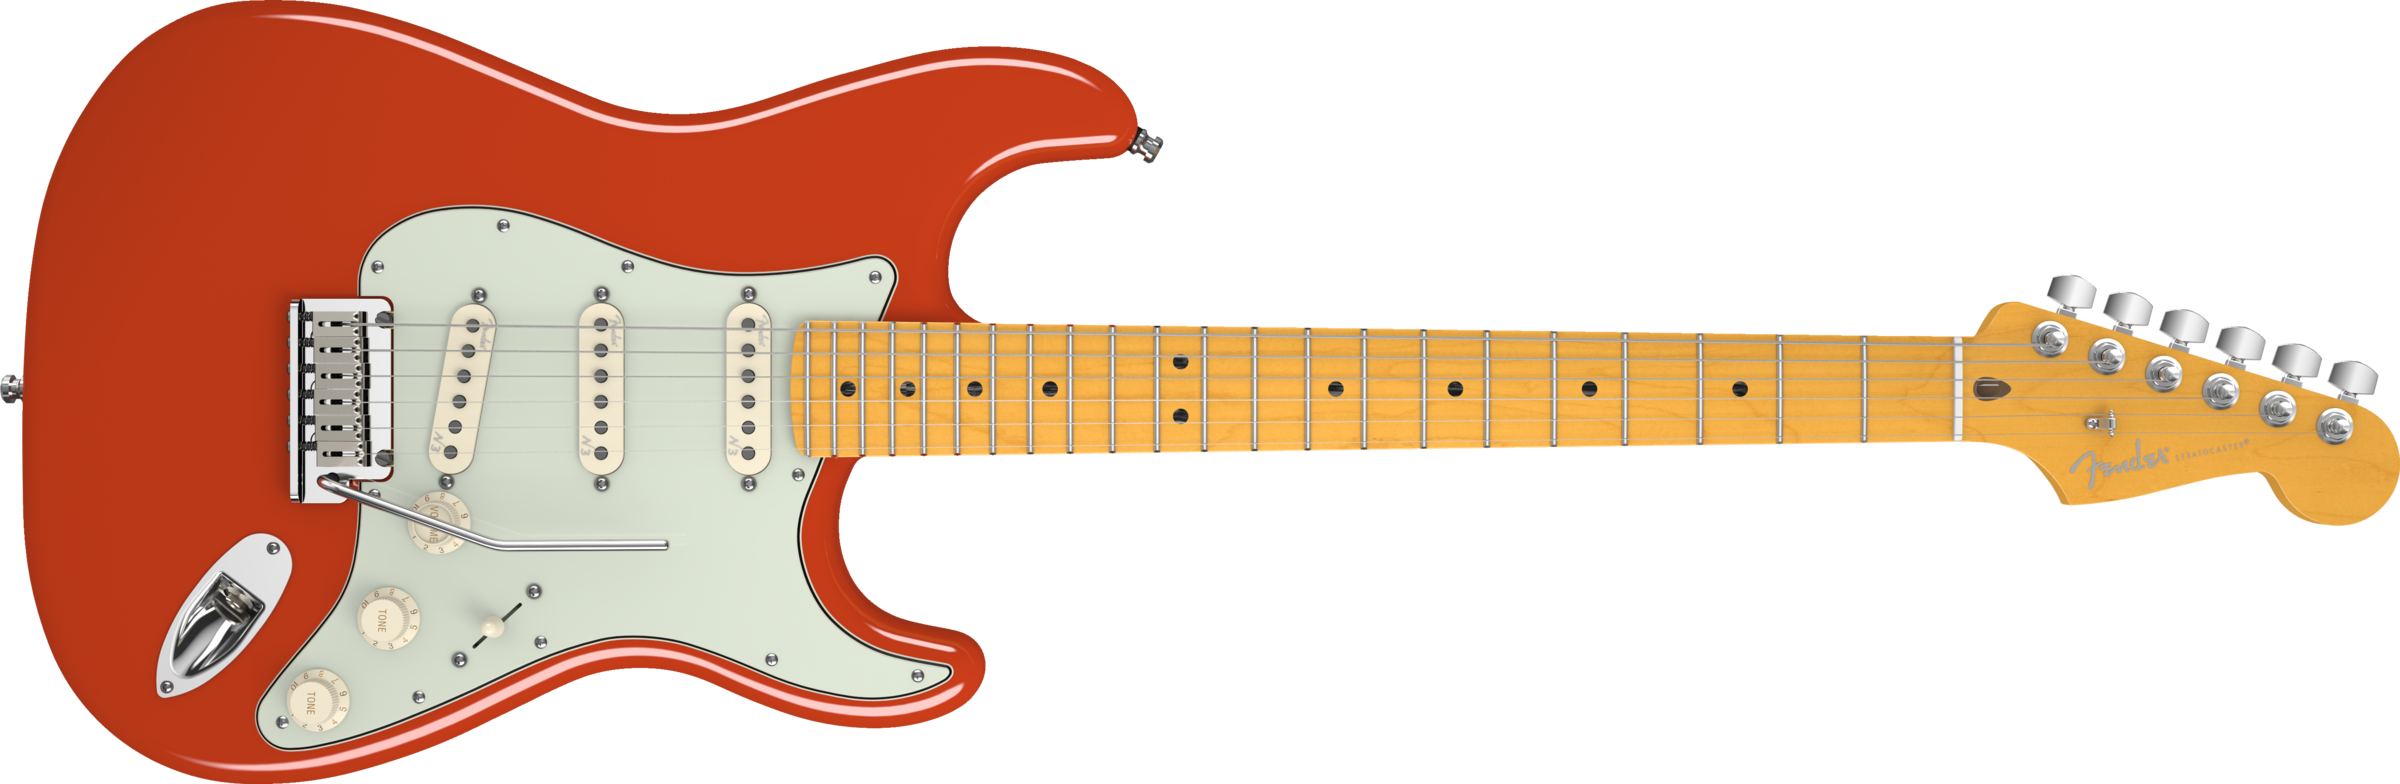 png royalty free stock Guitar clipart fiesta. American deluxe stratocaster v